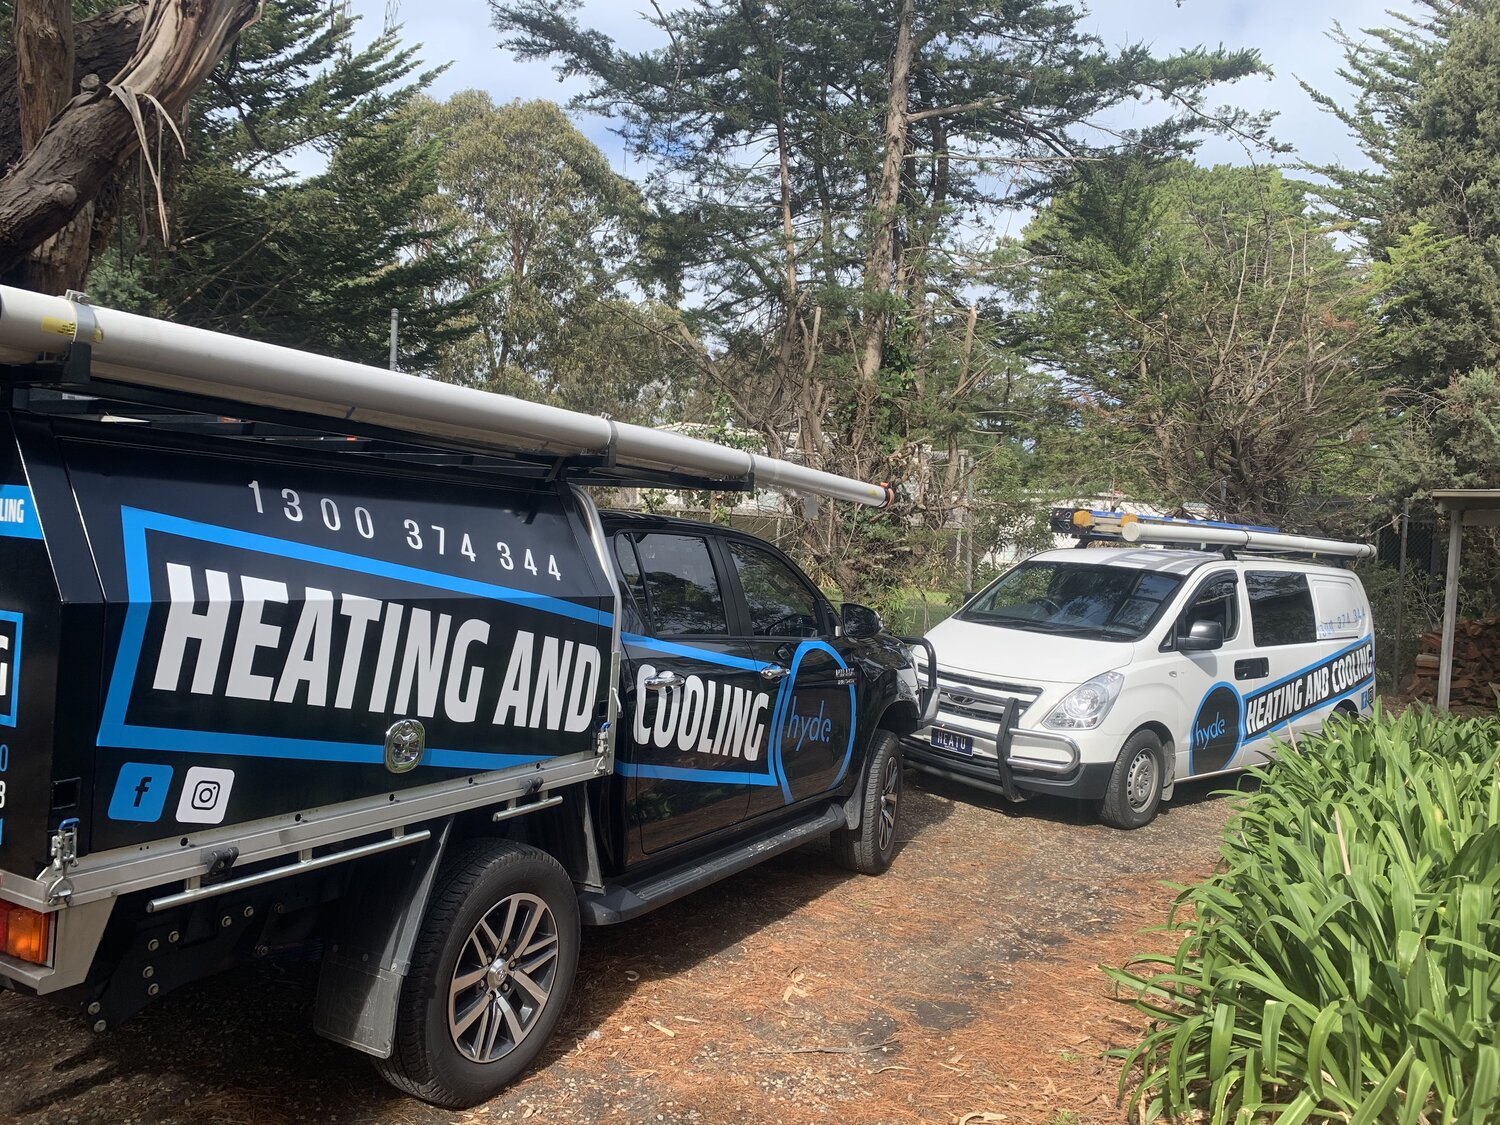 Hyde Heatingand Cooling Vehicles Shoreham